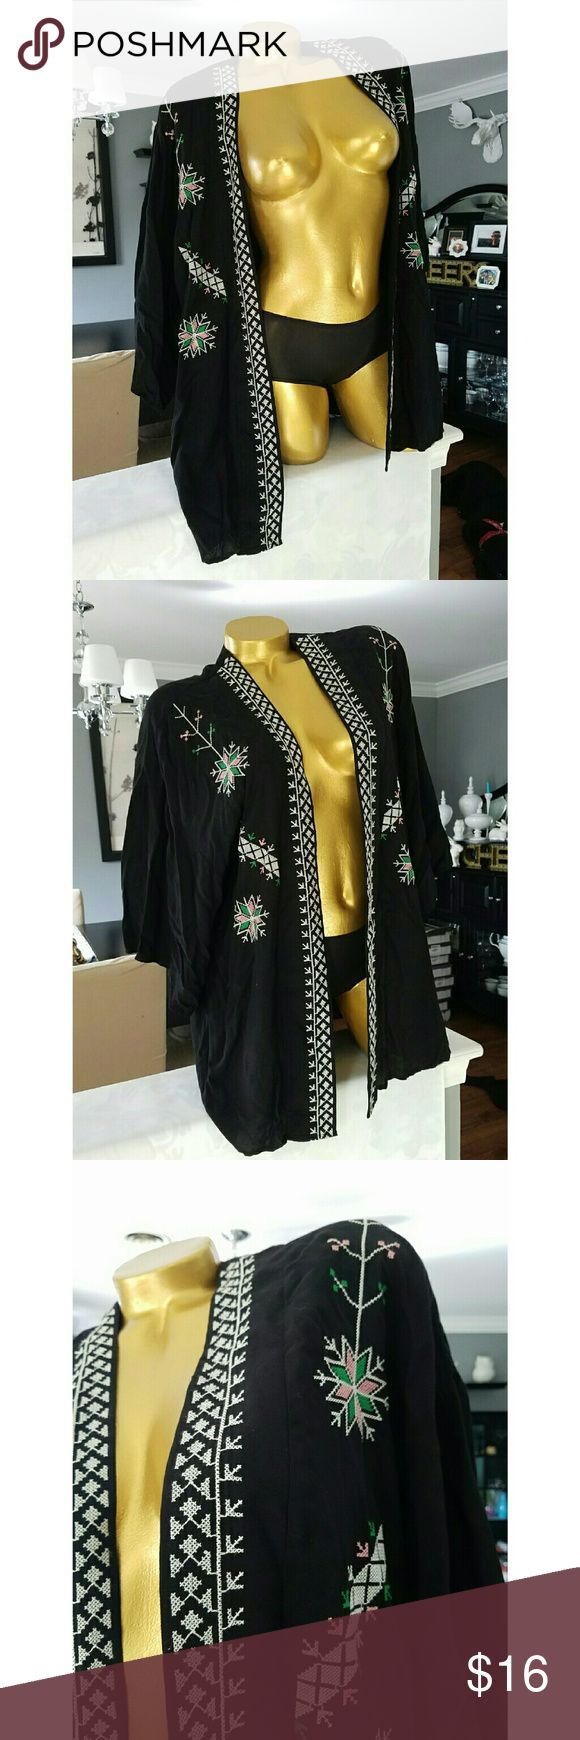 Hippy festival chic embroidered throw shrug Loose fitting shrug Lightly worn 28 inches long Rayon Forever 21 Tops